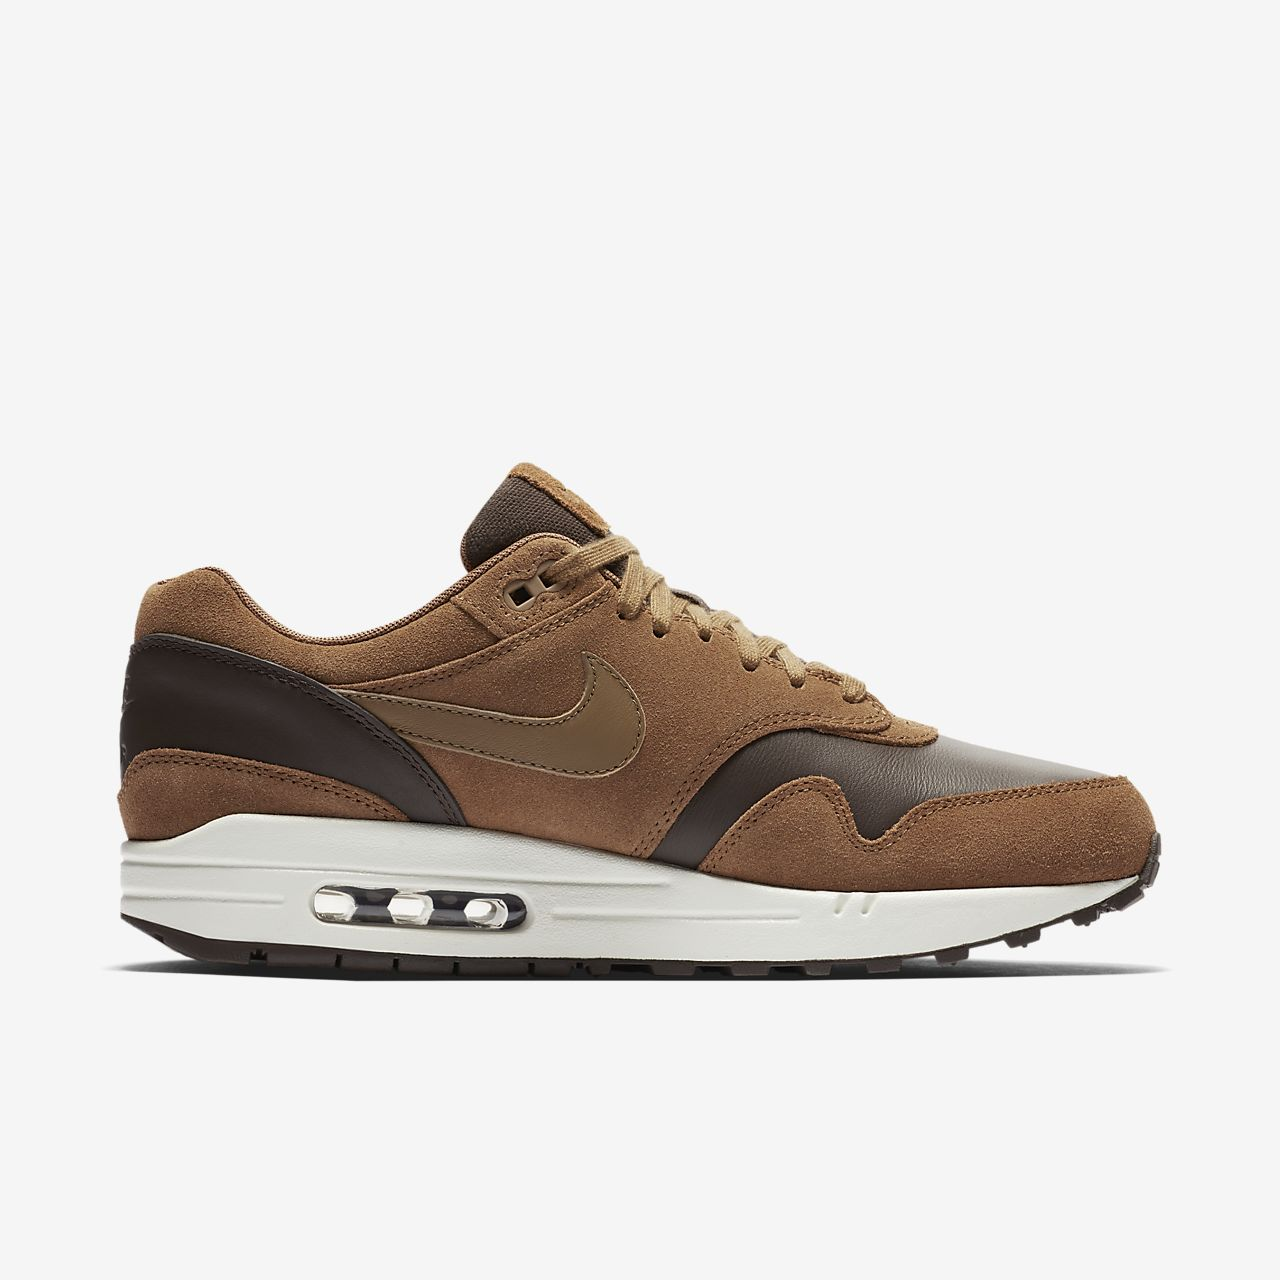 nike air max 1 premium sc men's shoe nz